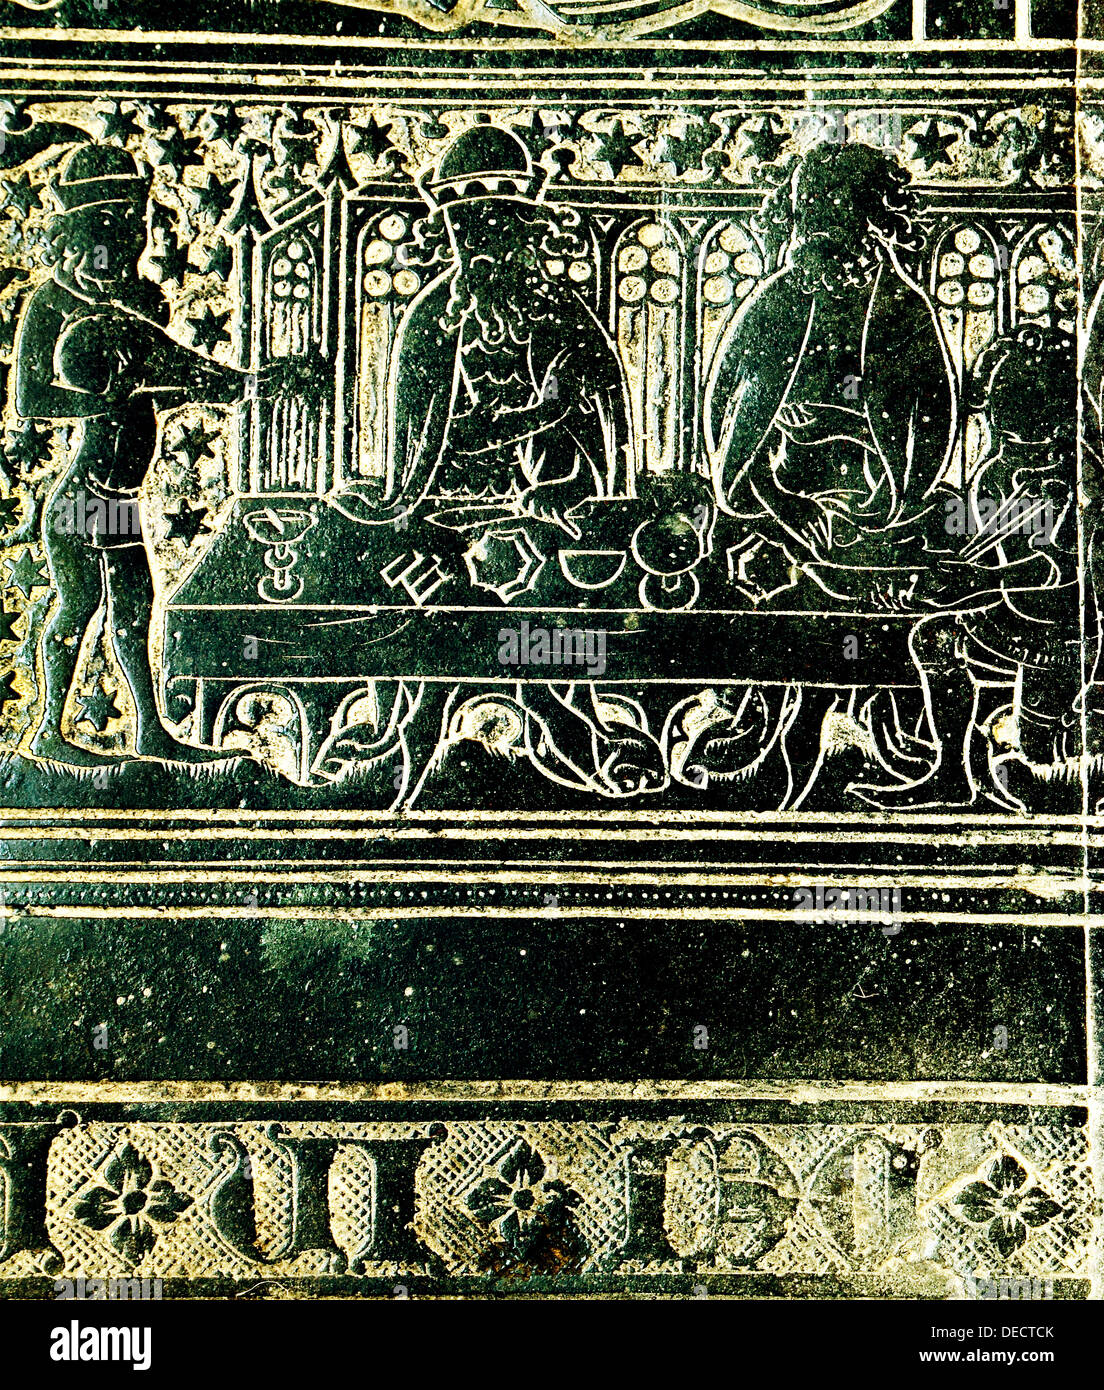 The Peacock Feast for King Edward 3rd, in 1349, detail from brass to Robert Braunche, St. Margaret's Church, Kings Lynn - Stock Image